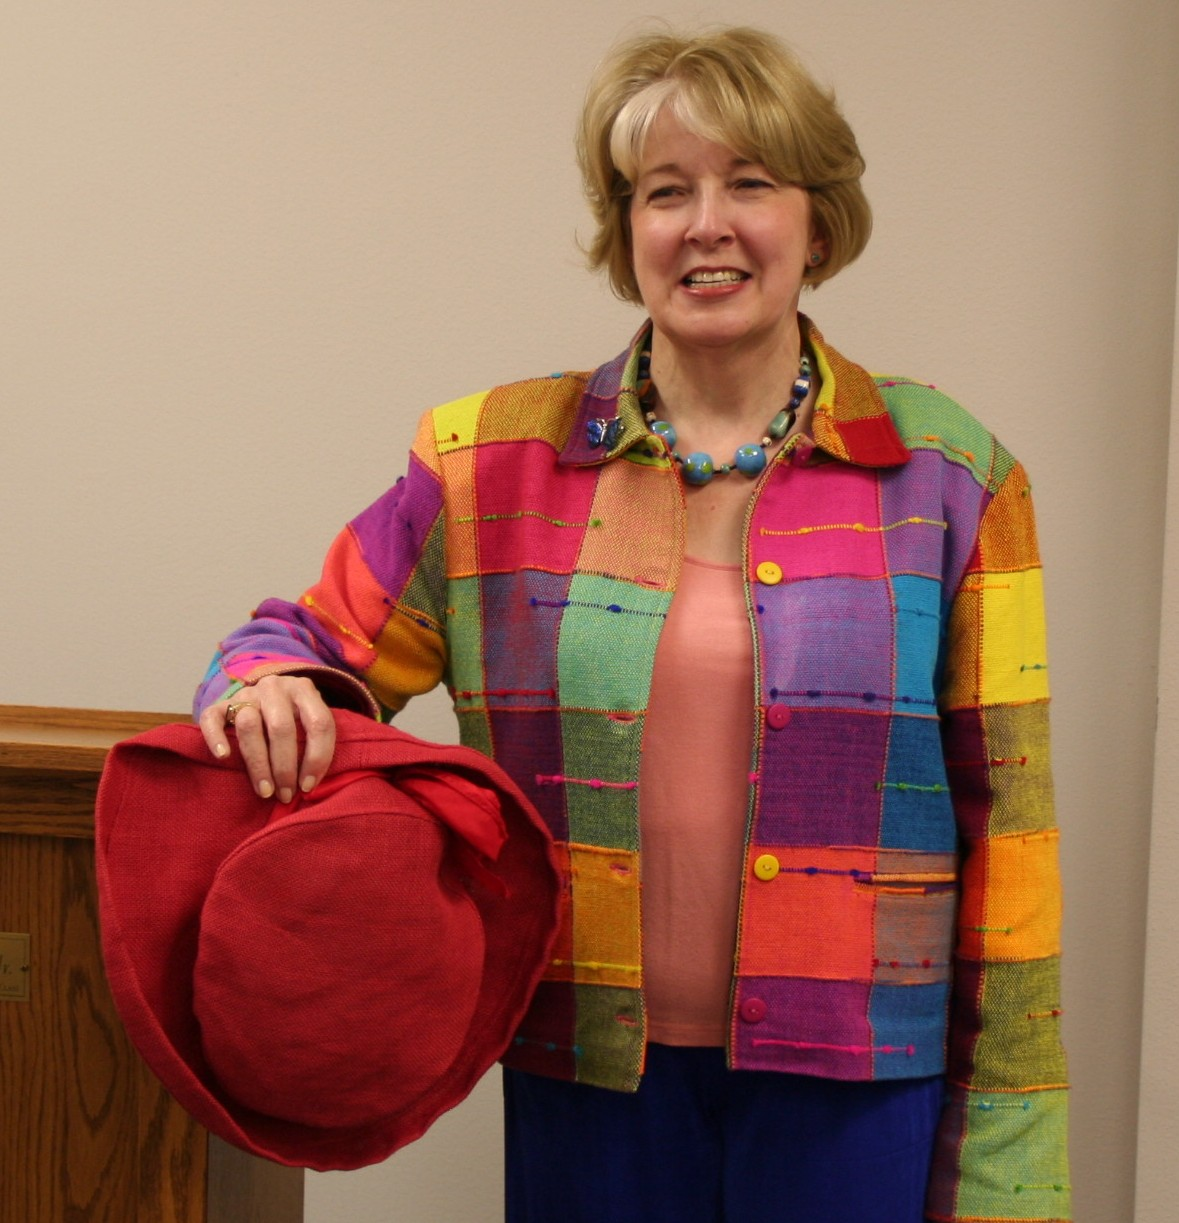 Gail in jacket of many colors